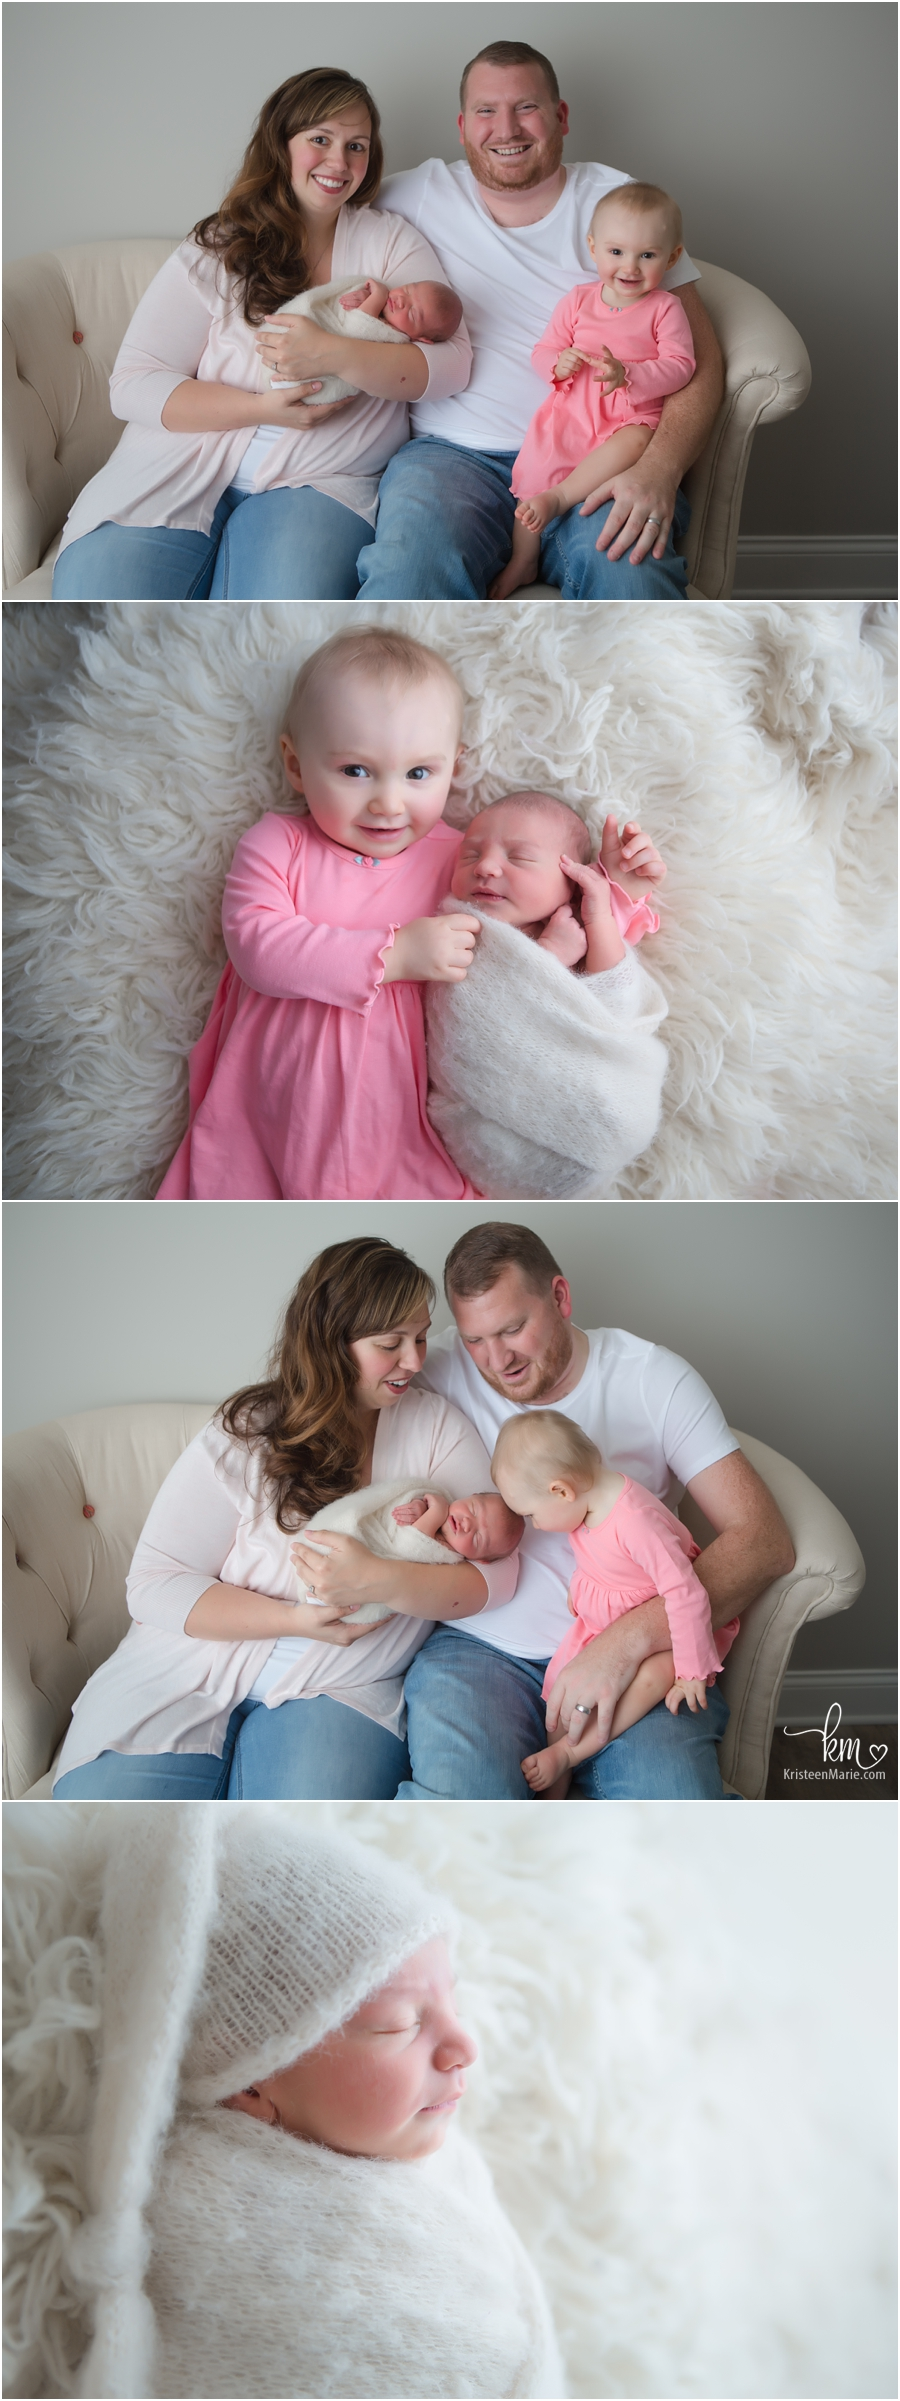 whole family in Indianapolis in photography studio with newborn baby